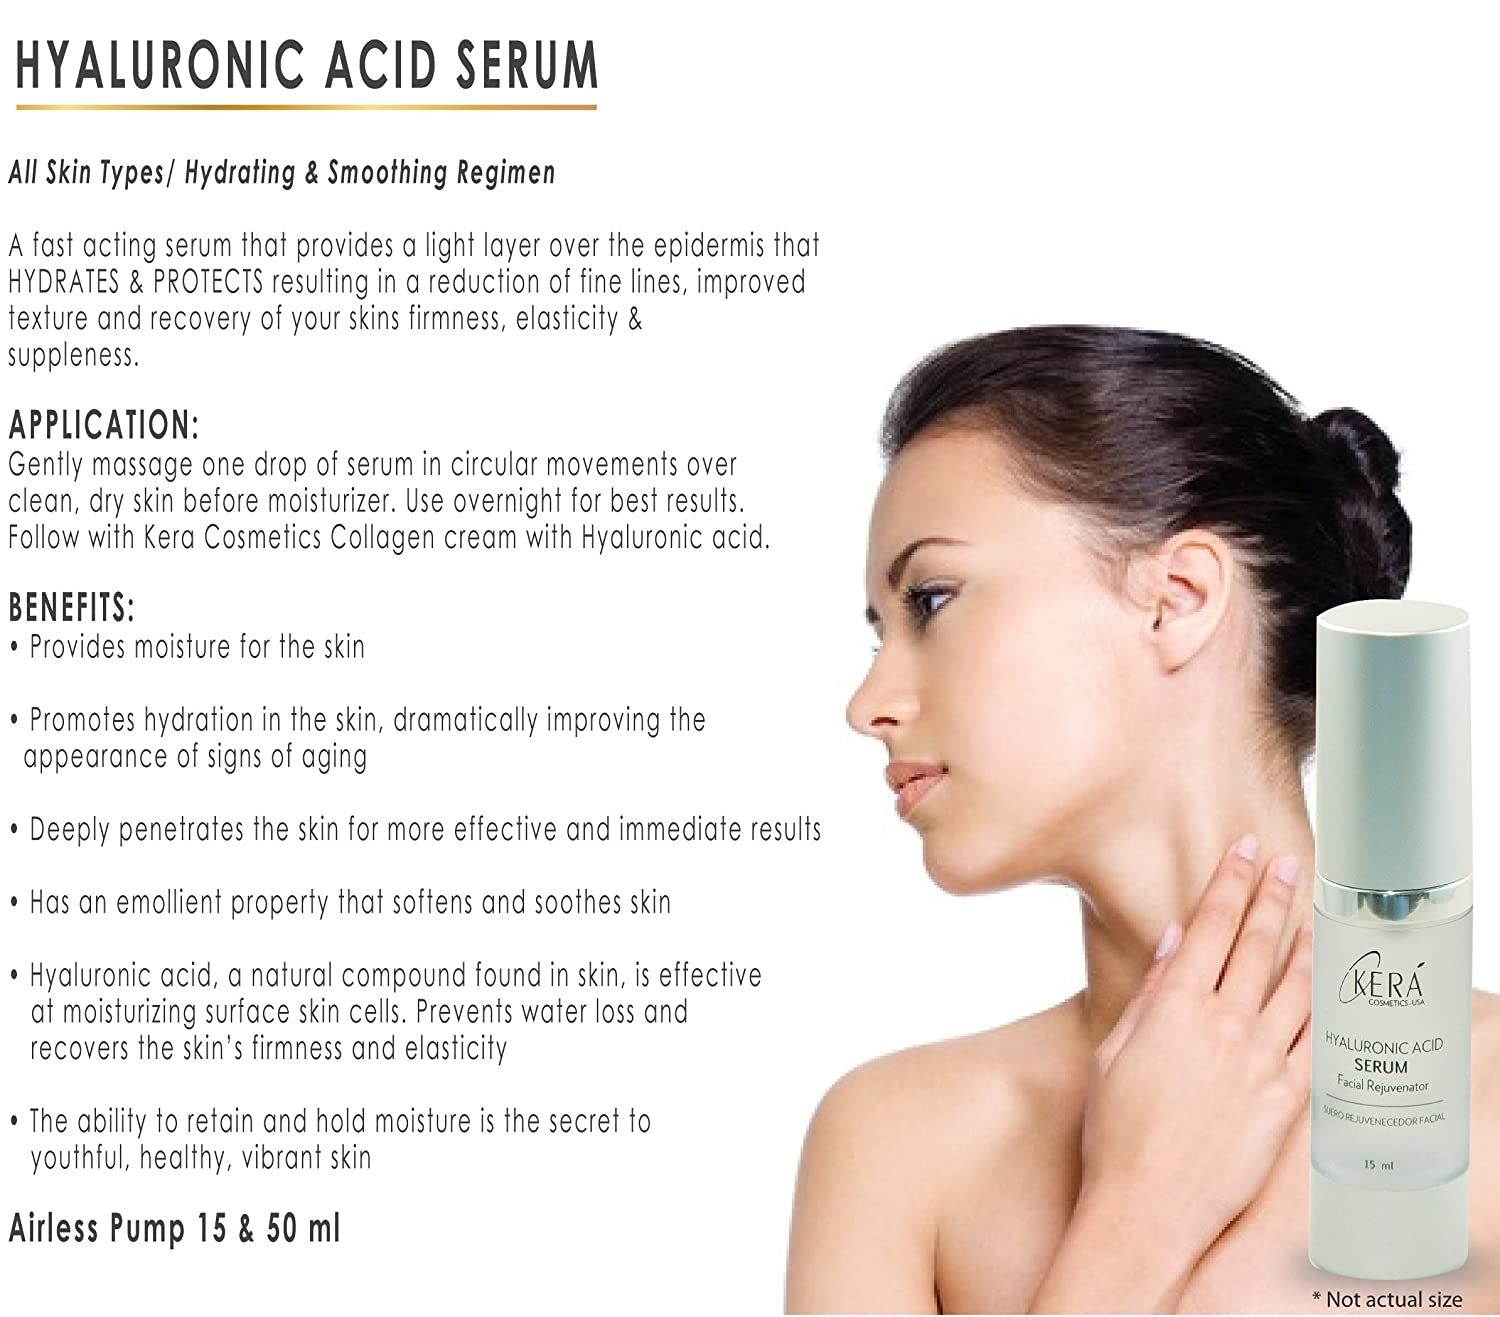 Amazon.com: Hyaluronic Acid Serum / Acido Hialuronico 50 ml / 1.75 oz: Beauty